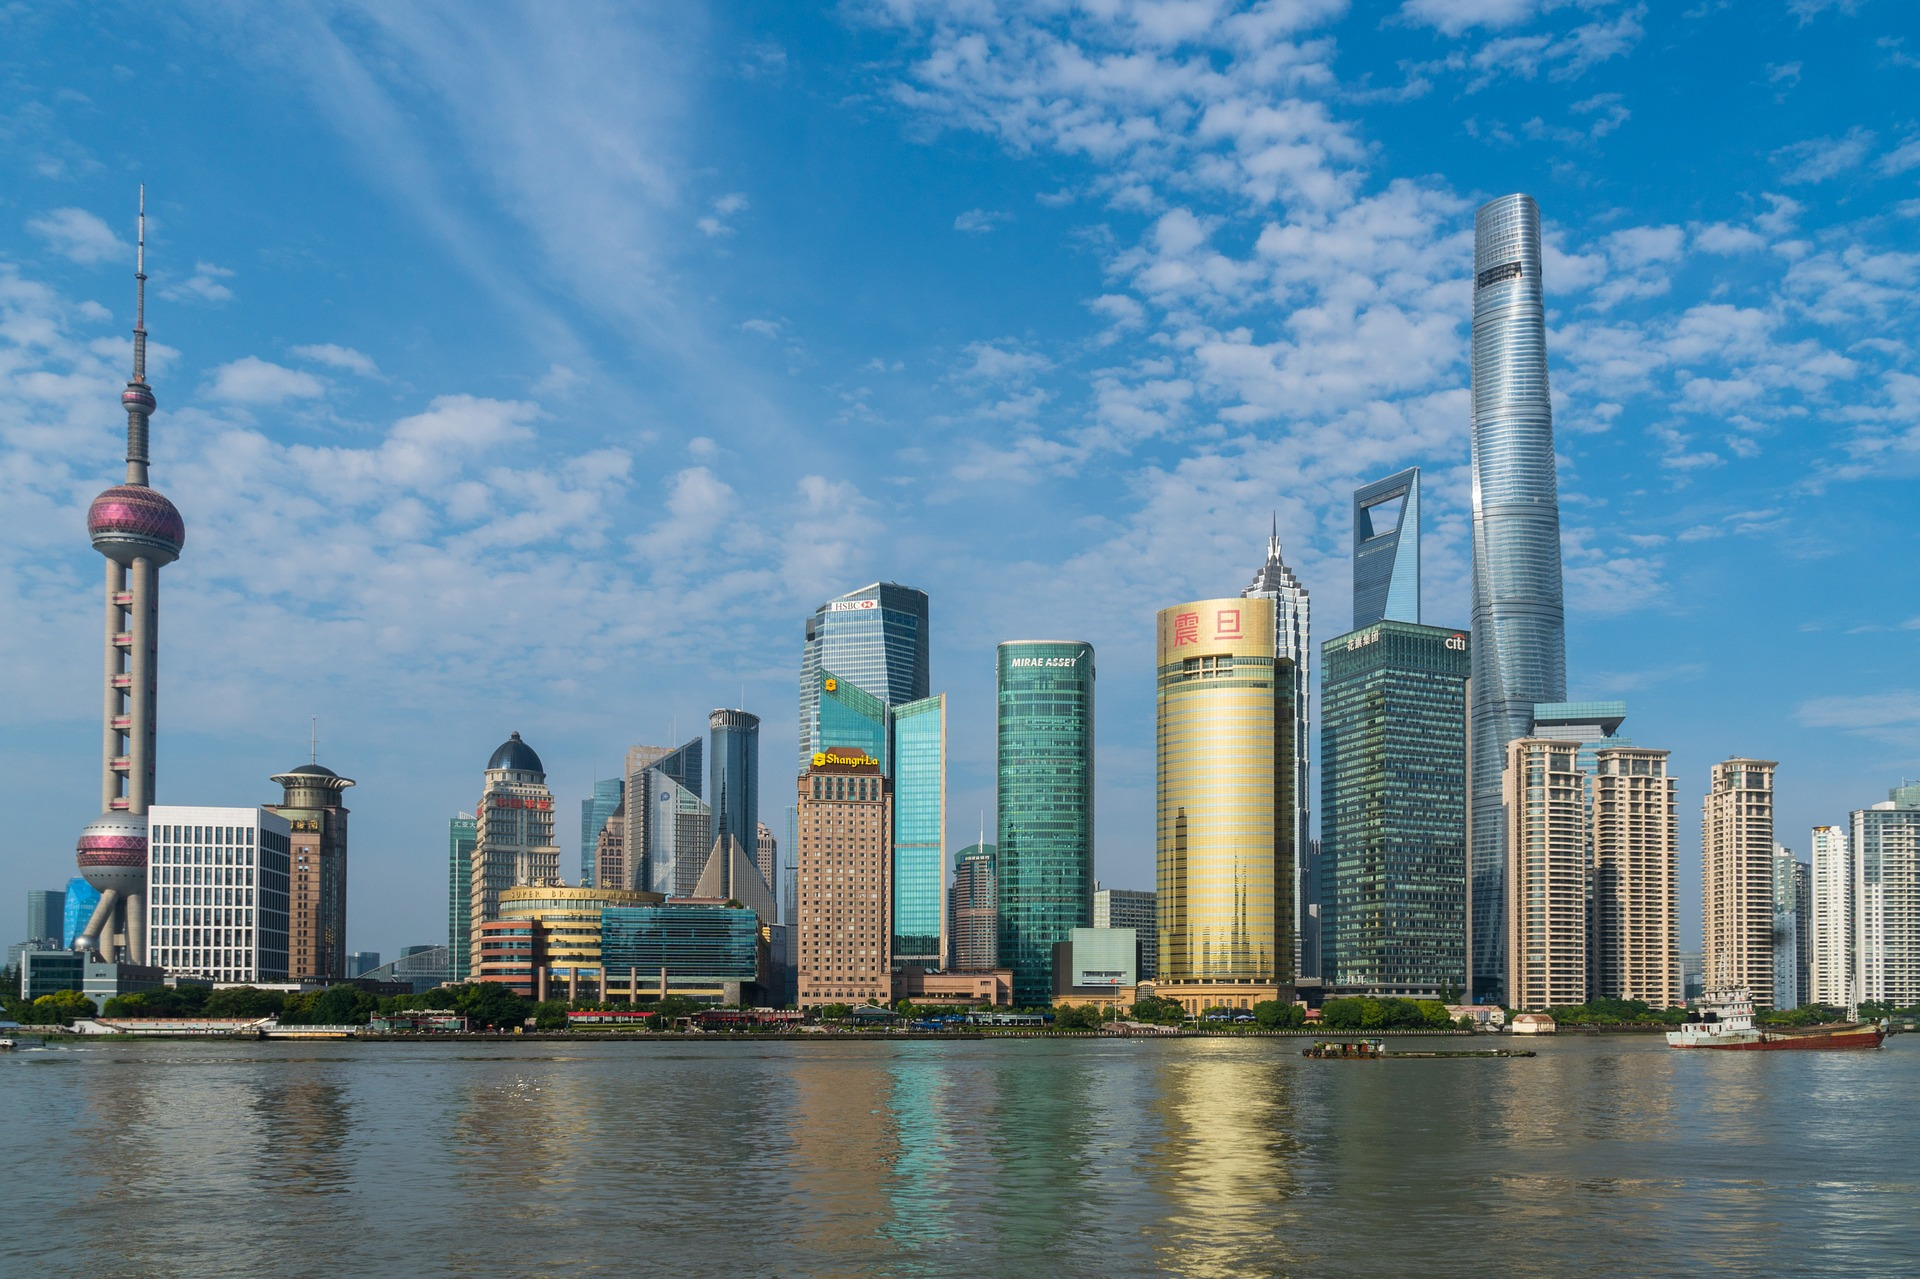 Shanghai Travel Guide – The City of Ancient and Modern Glory